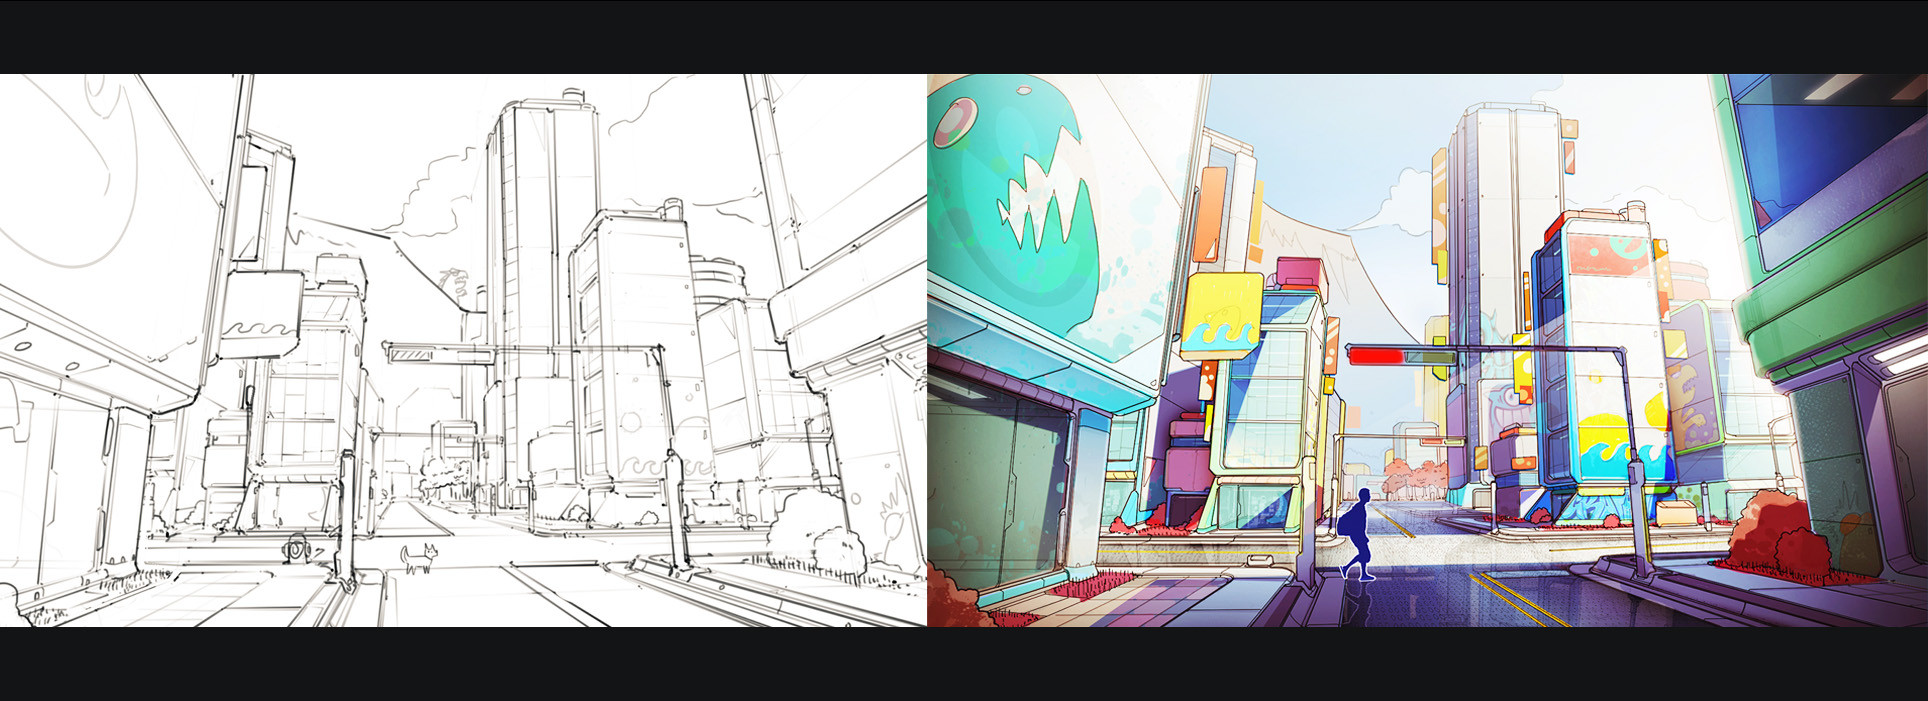 Original concept for the city. First visions were very bright and colorful. Biggest inspiration was 'Sunset Overdrive'.